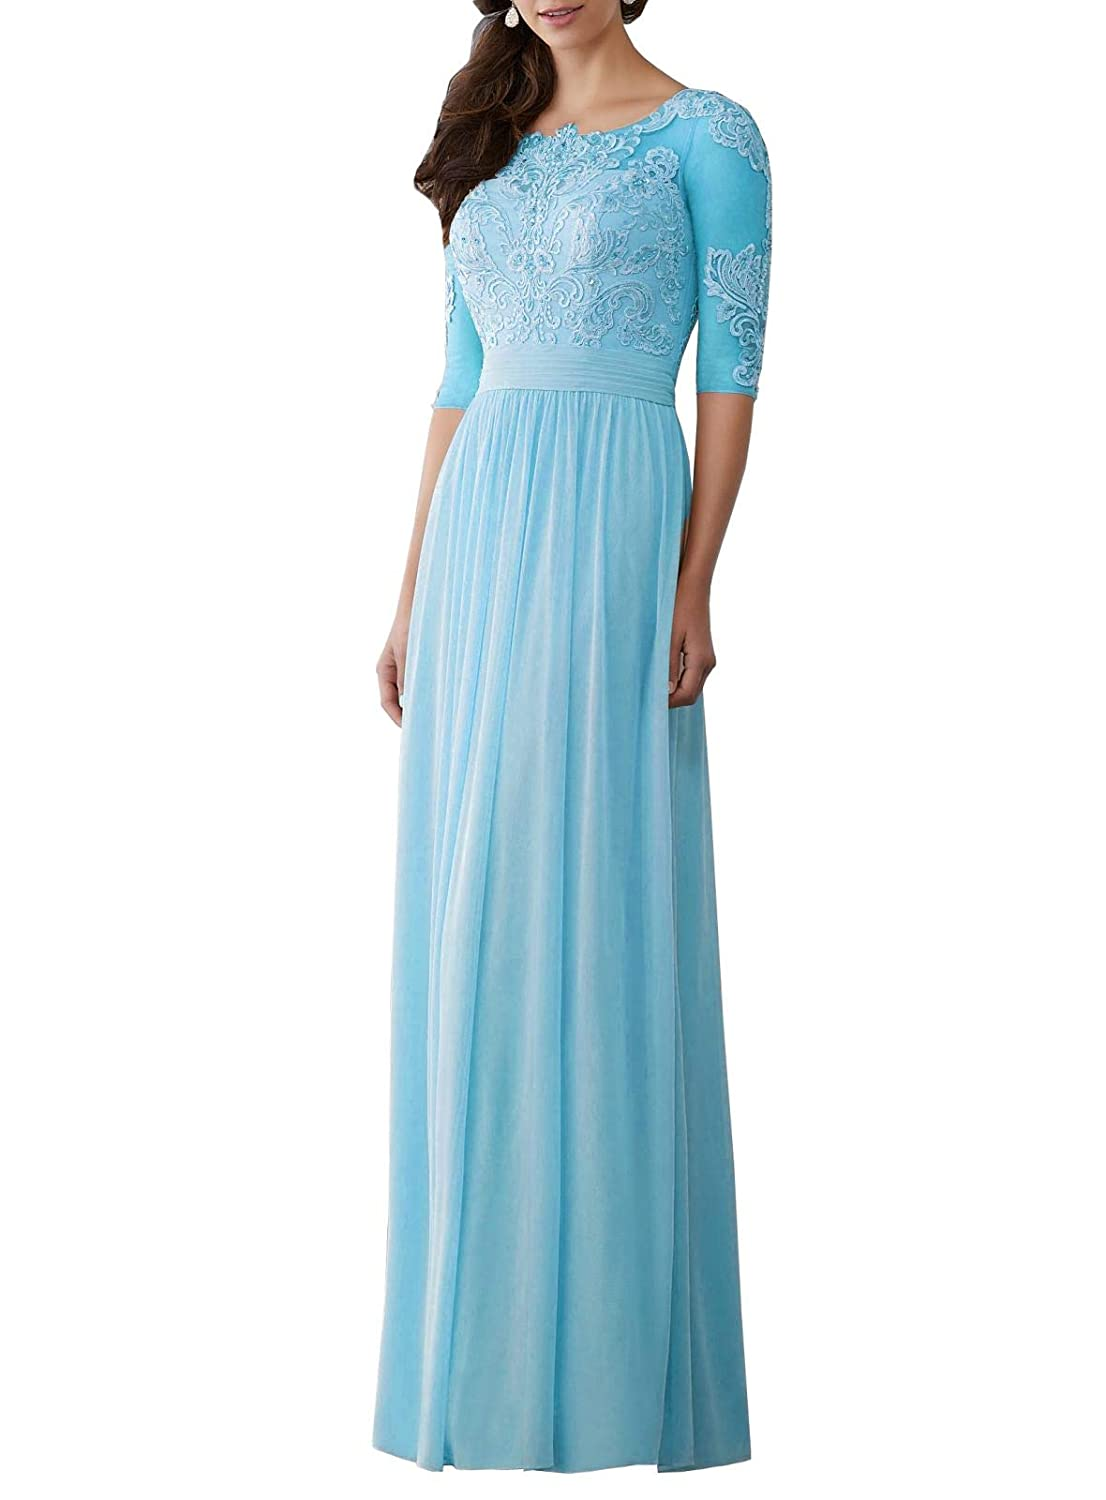 Sky bluee Wanshaqin Women's Aline Illusion Lace Appliques Evening Gown Formal Wedding Party Dress for Brides with Pleated Empire Waist